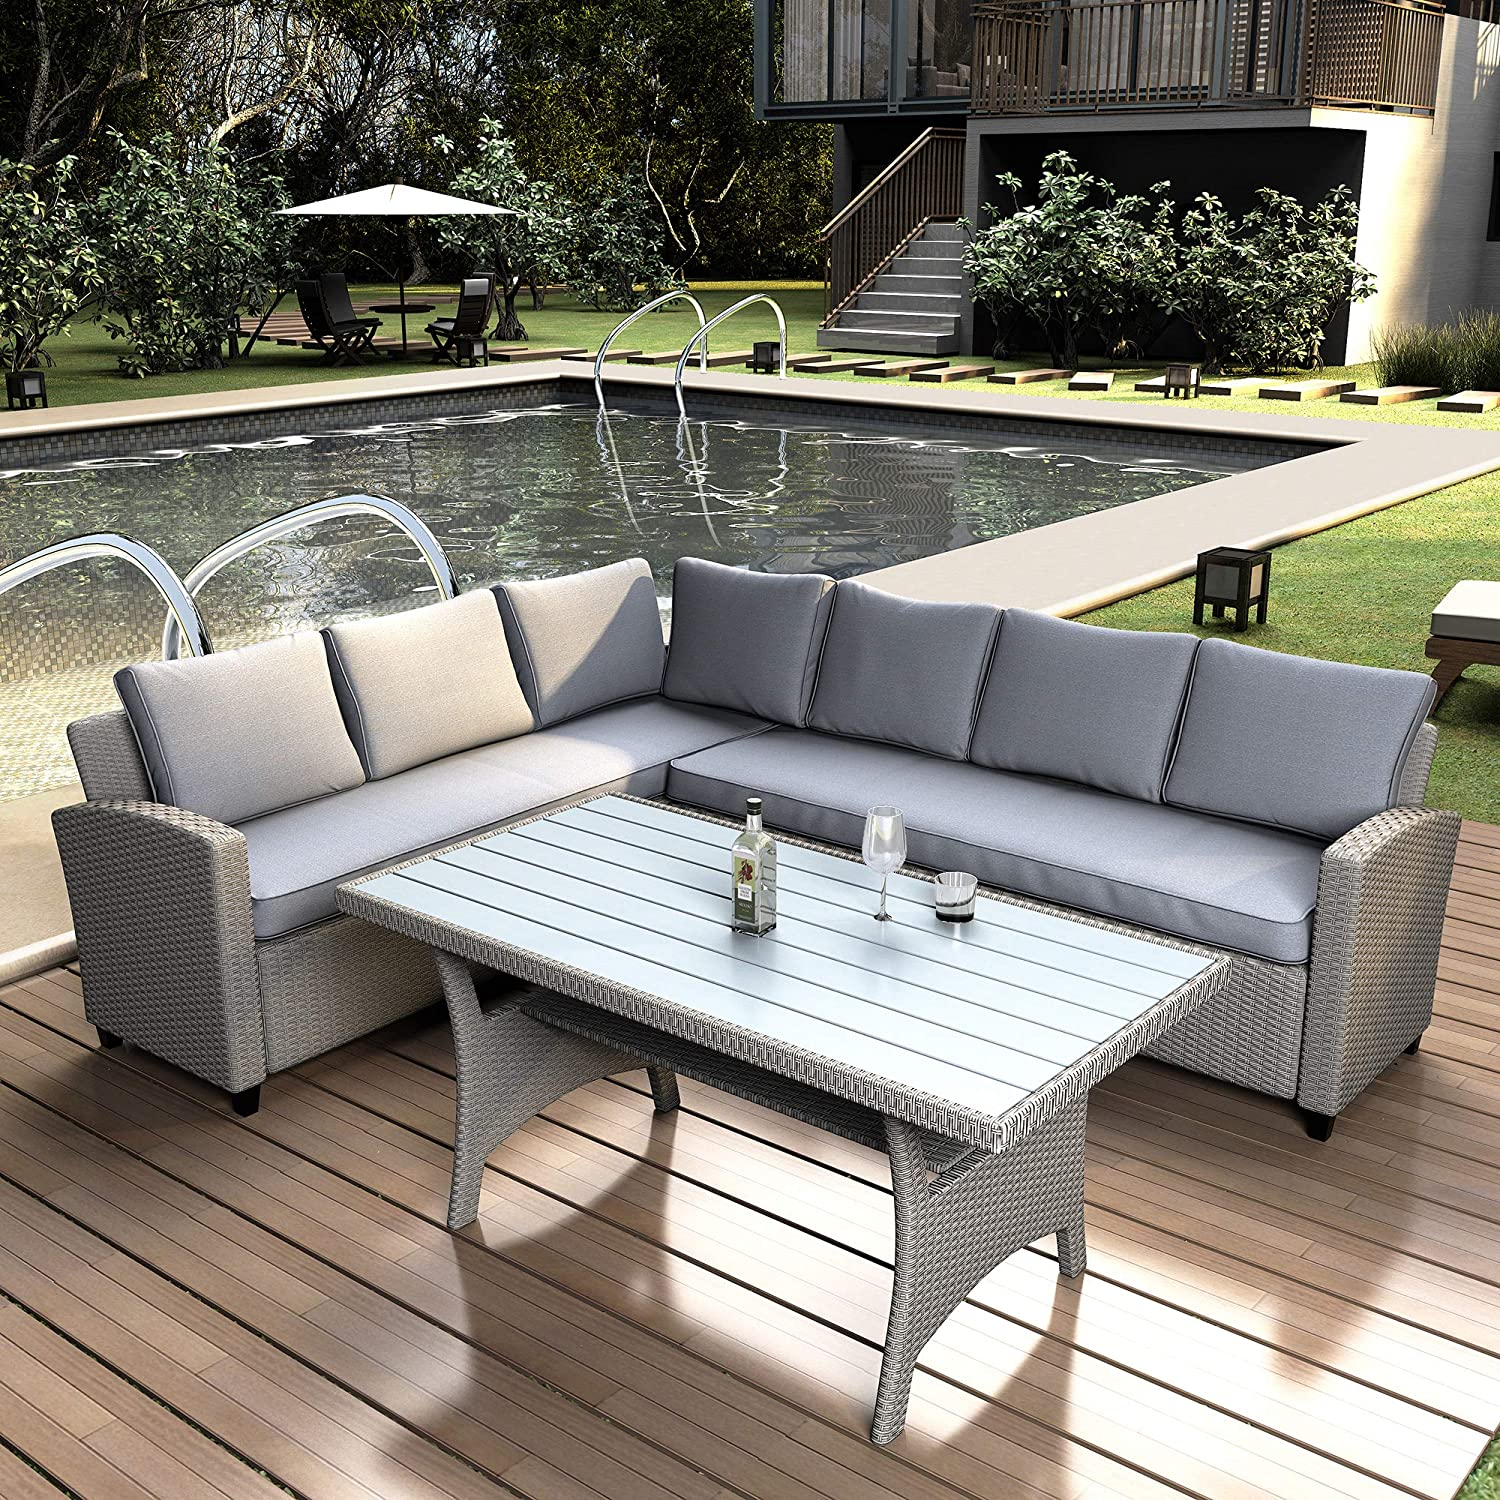 LZ LEISURE ZONE Patio Dining Table Set Outdoor Furniture PE Rattan Wicker Conversation Set All-Weather Sectional Sofa Set with Table & Soft Cushions (Grizzle)